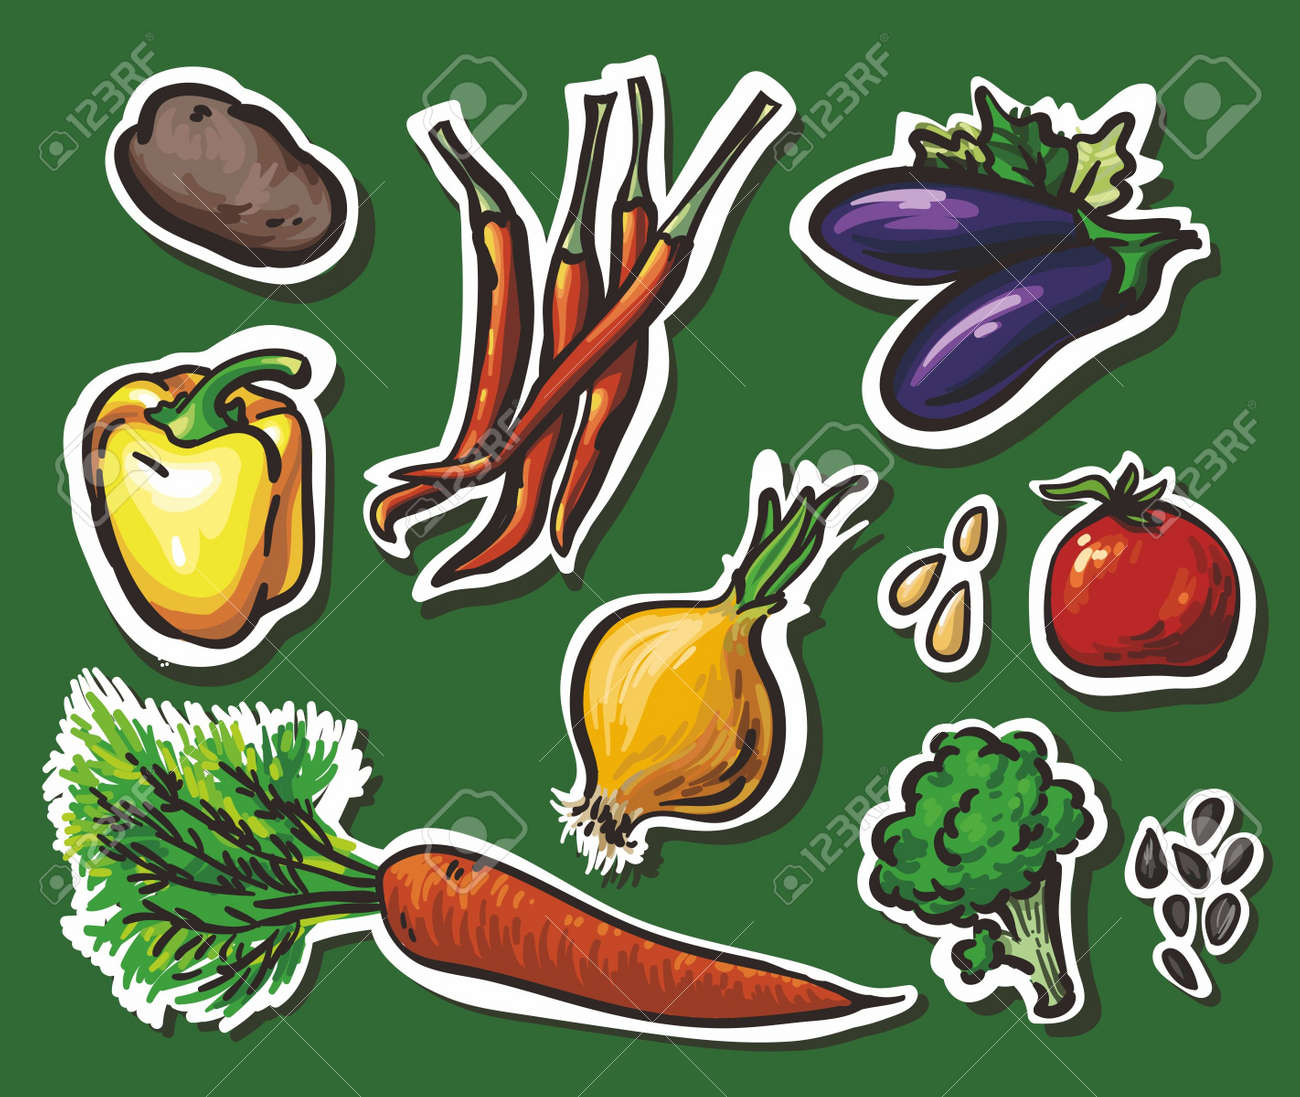 Set of 8 vegetables: potatoes, peppers, eggplant, onions, tomatoes, carrots, broccoli. white outline and shadow Stock Vector - 11308462